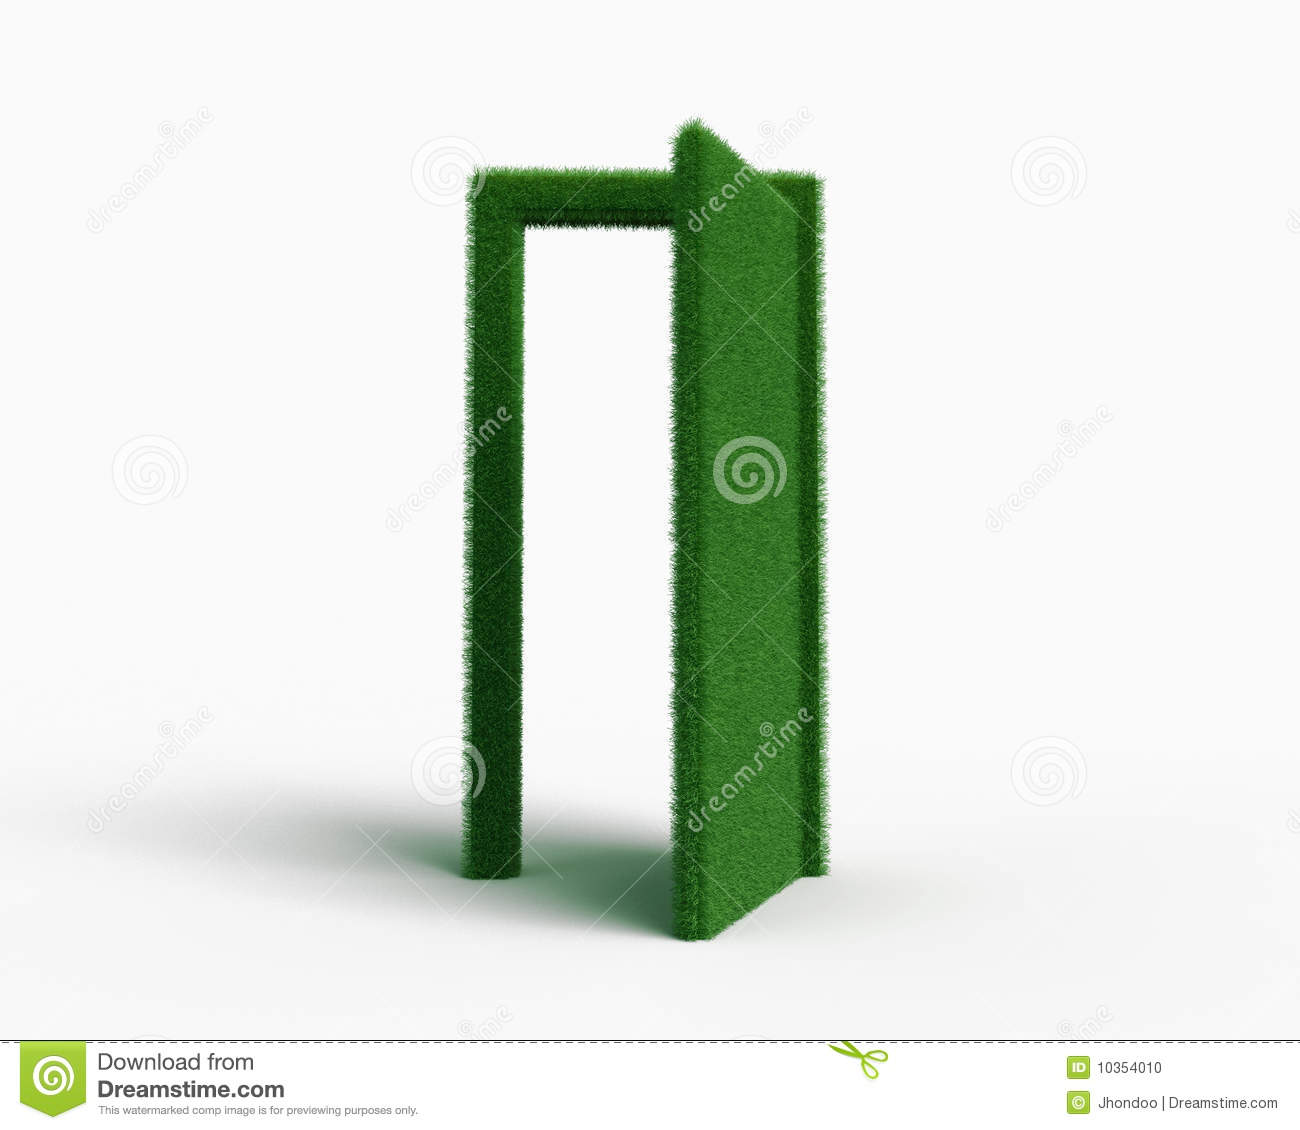 Behind the grass door  sc 1 st  Dreamstime.com & Behind the grass door stock illustration. Illustration of innovation ...